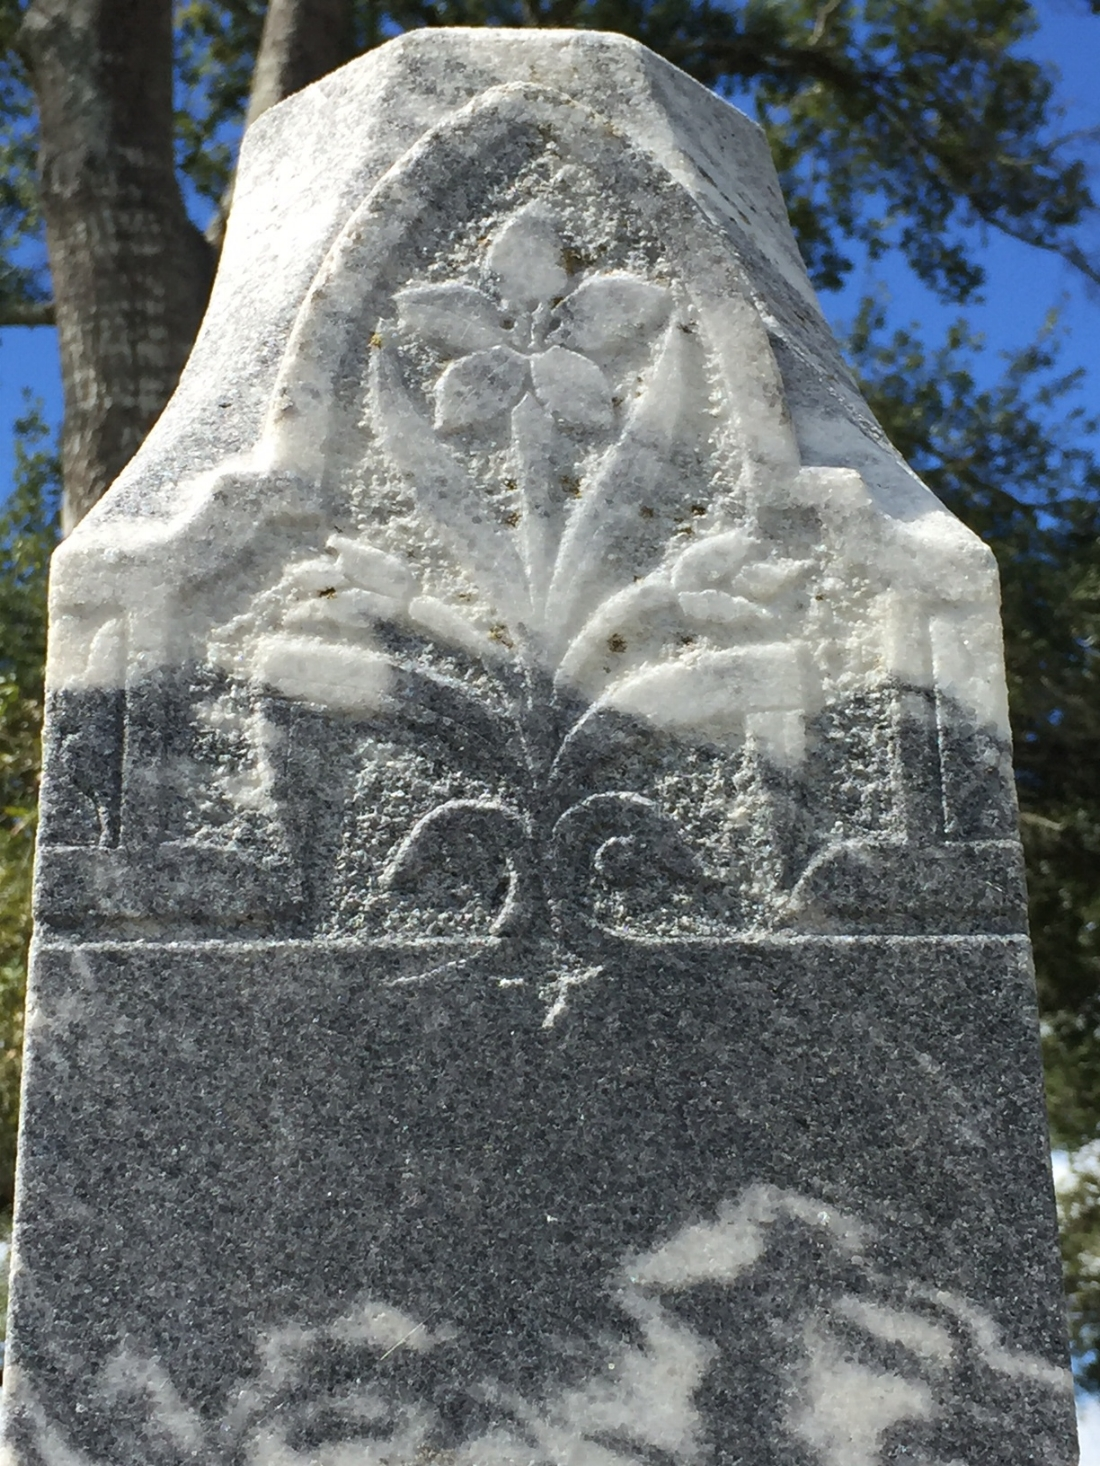 Floral details with lovely and intricate detail adorn many of the monuments at Mt. Zion